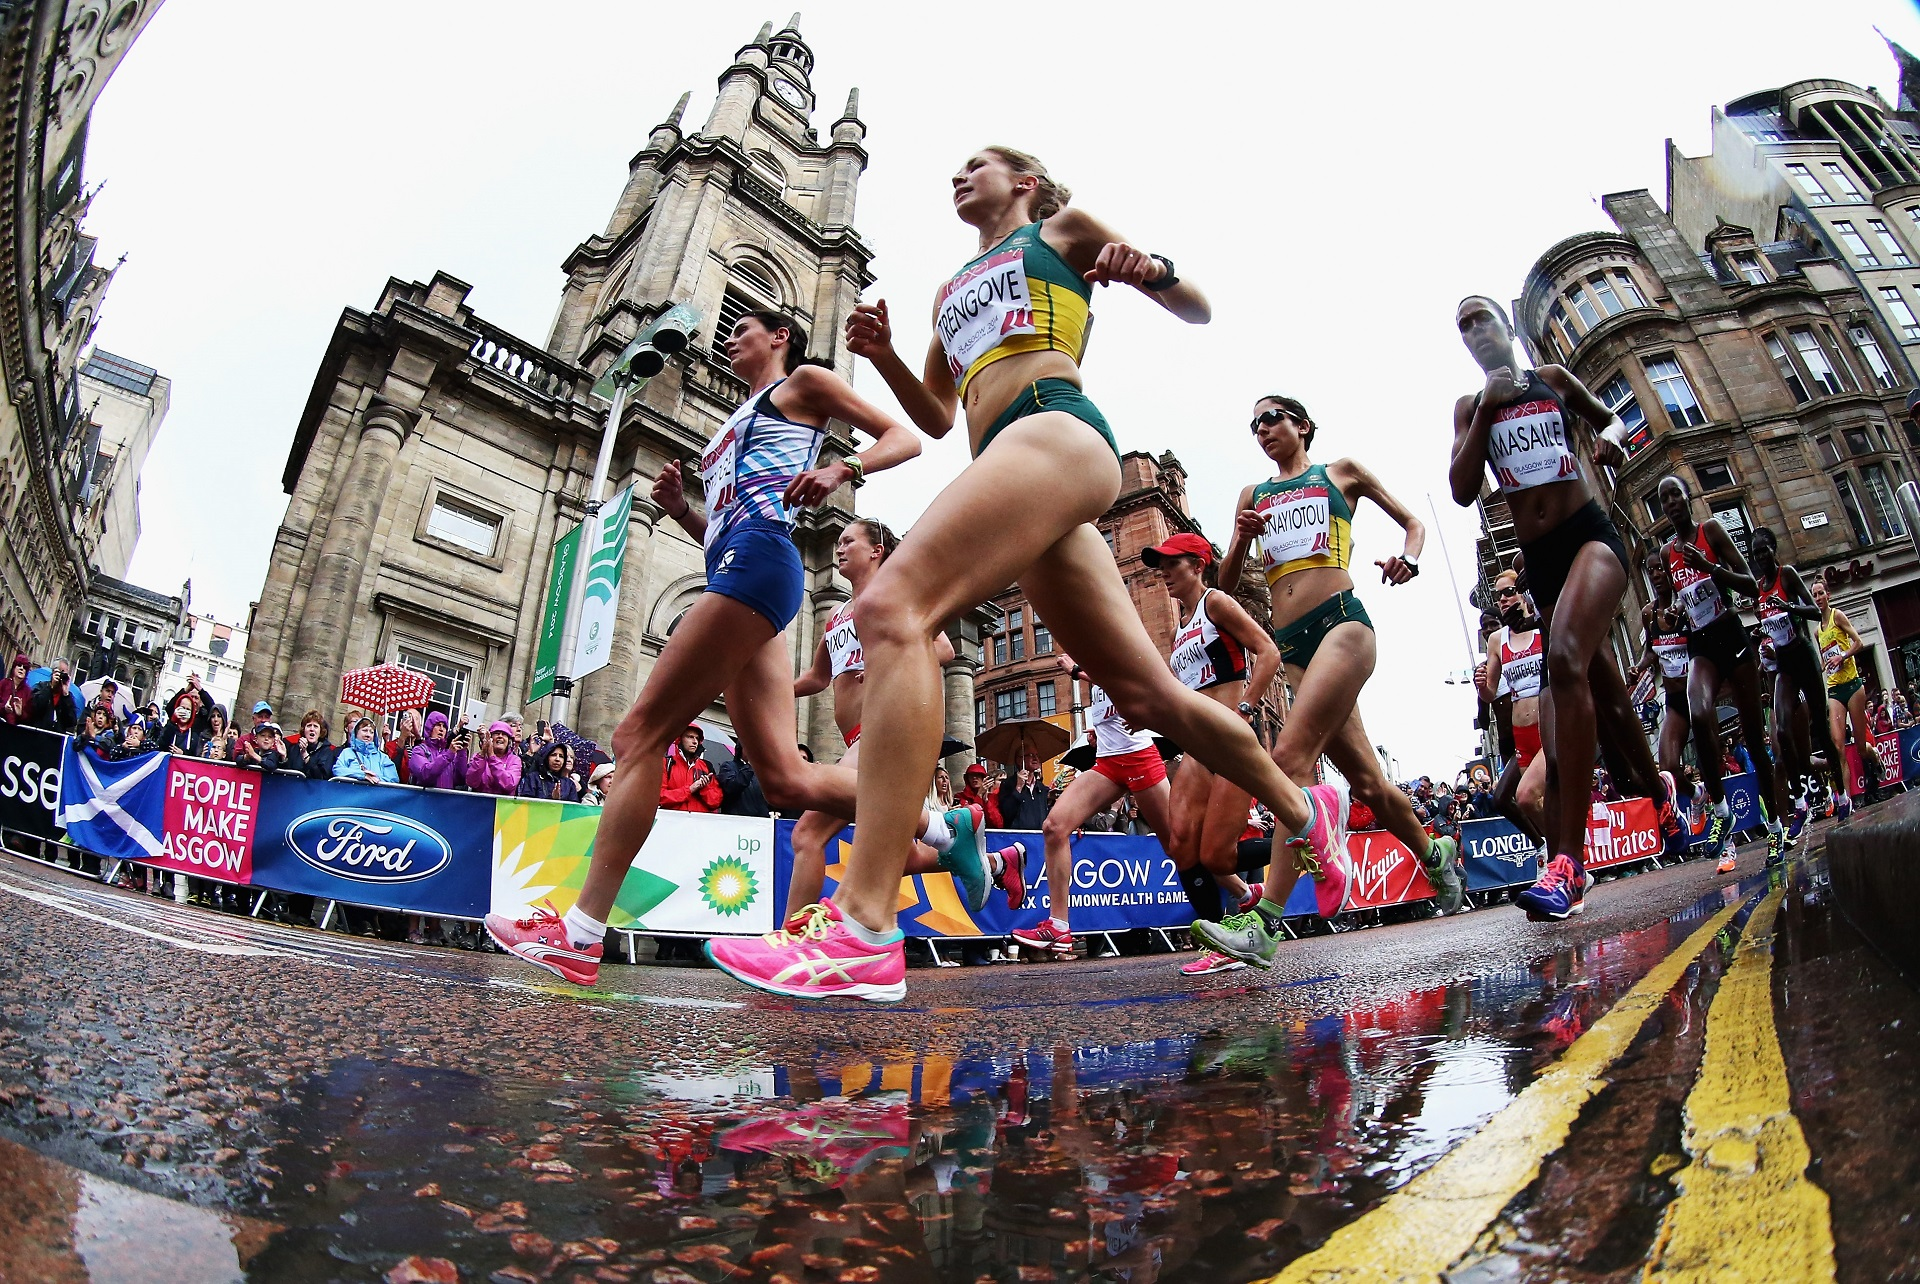 Australia's Jessica Trengove and Scotland's Susan Partridge lead the field in the women's Marathon at the Glasgow 2014 Commonwealth Games